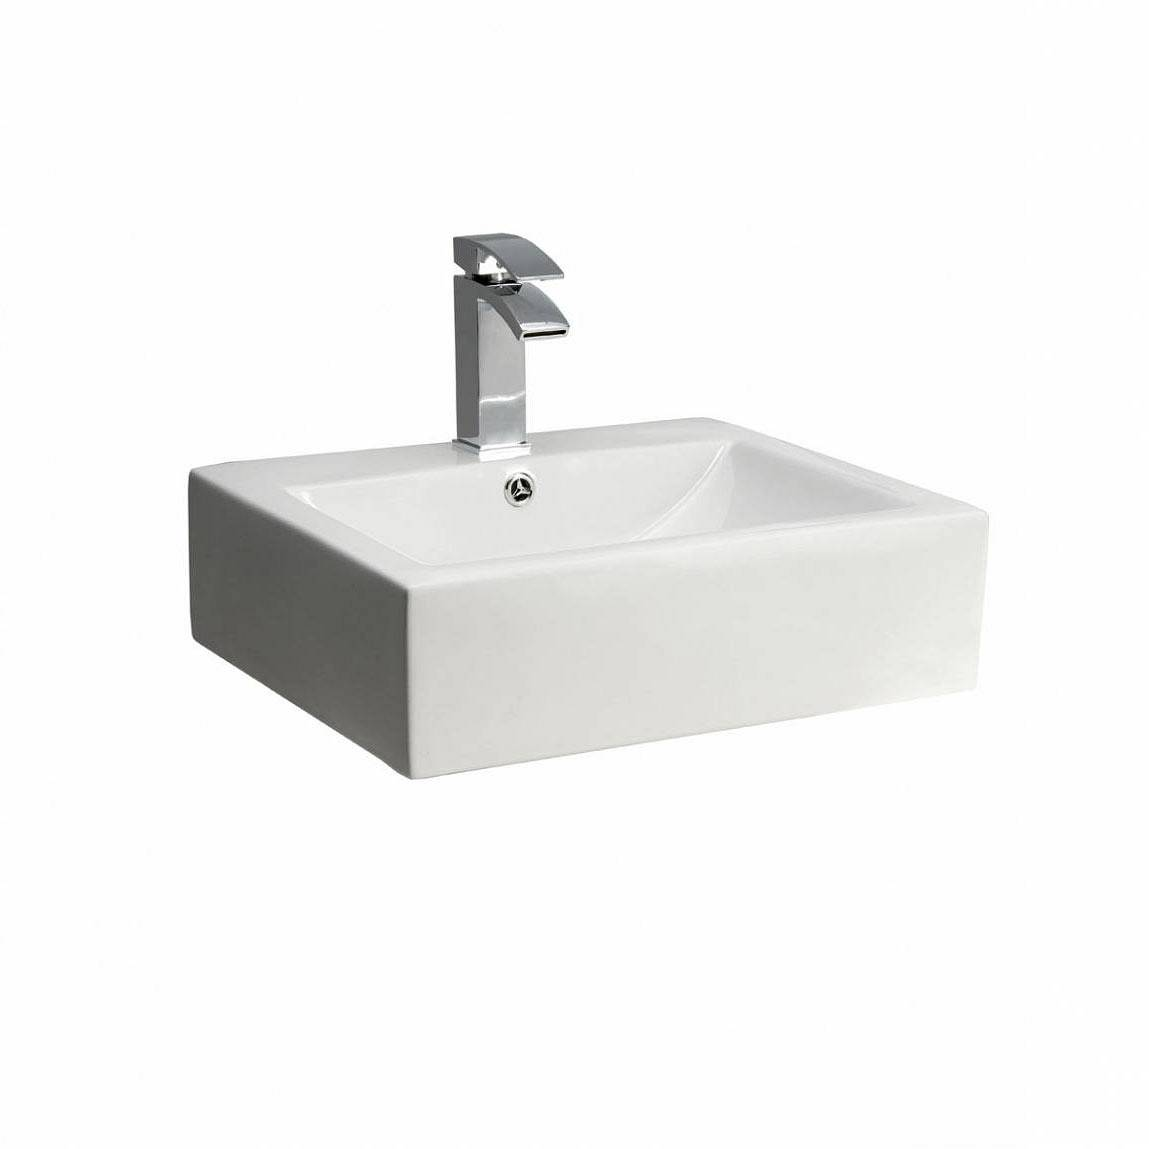 Image of Quadra Counter Top Basin PLUS Waste